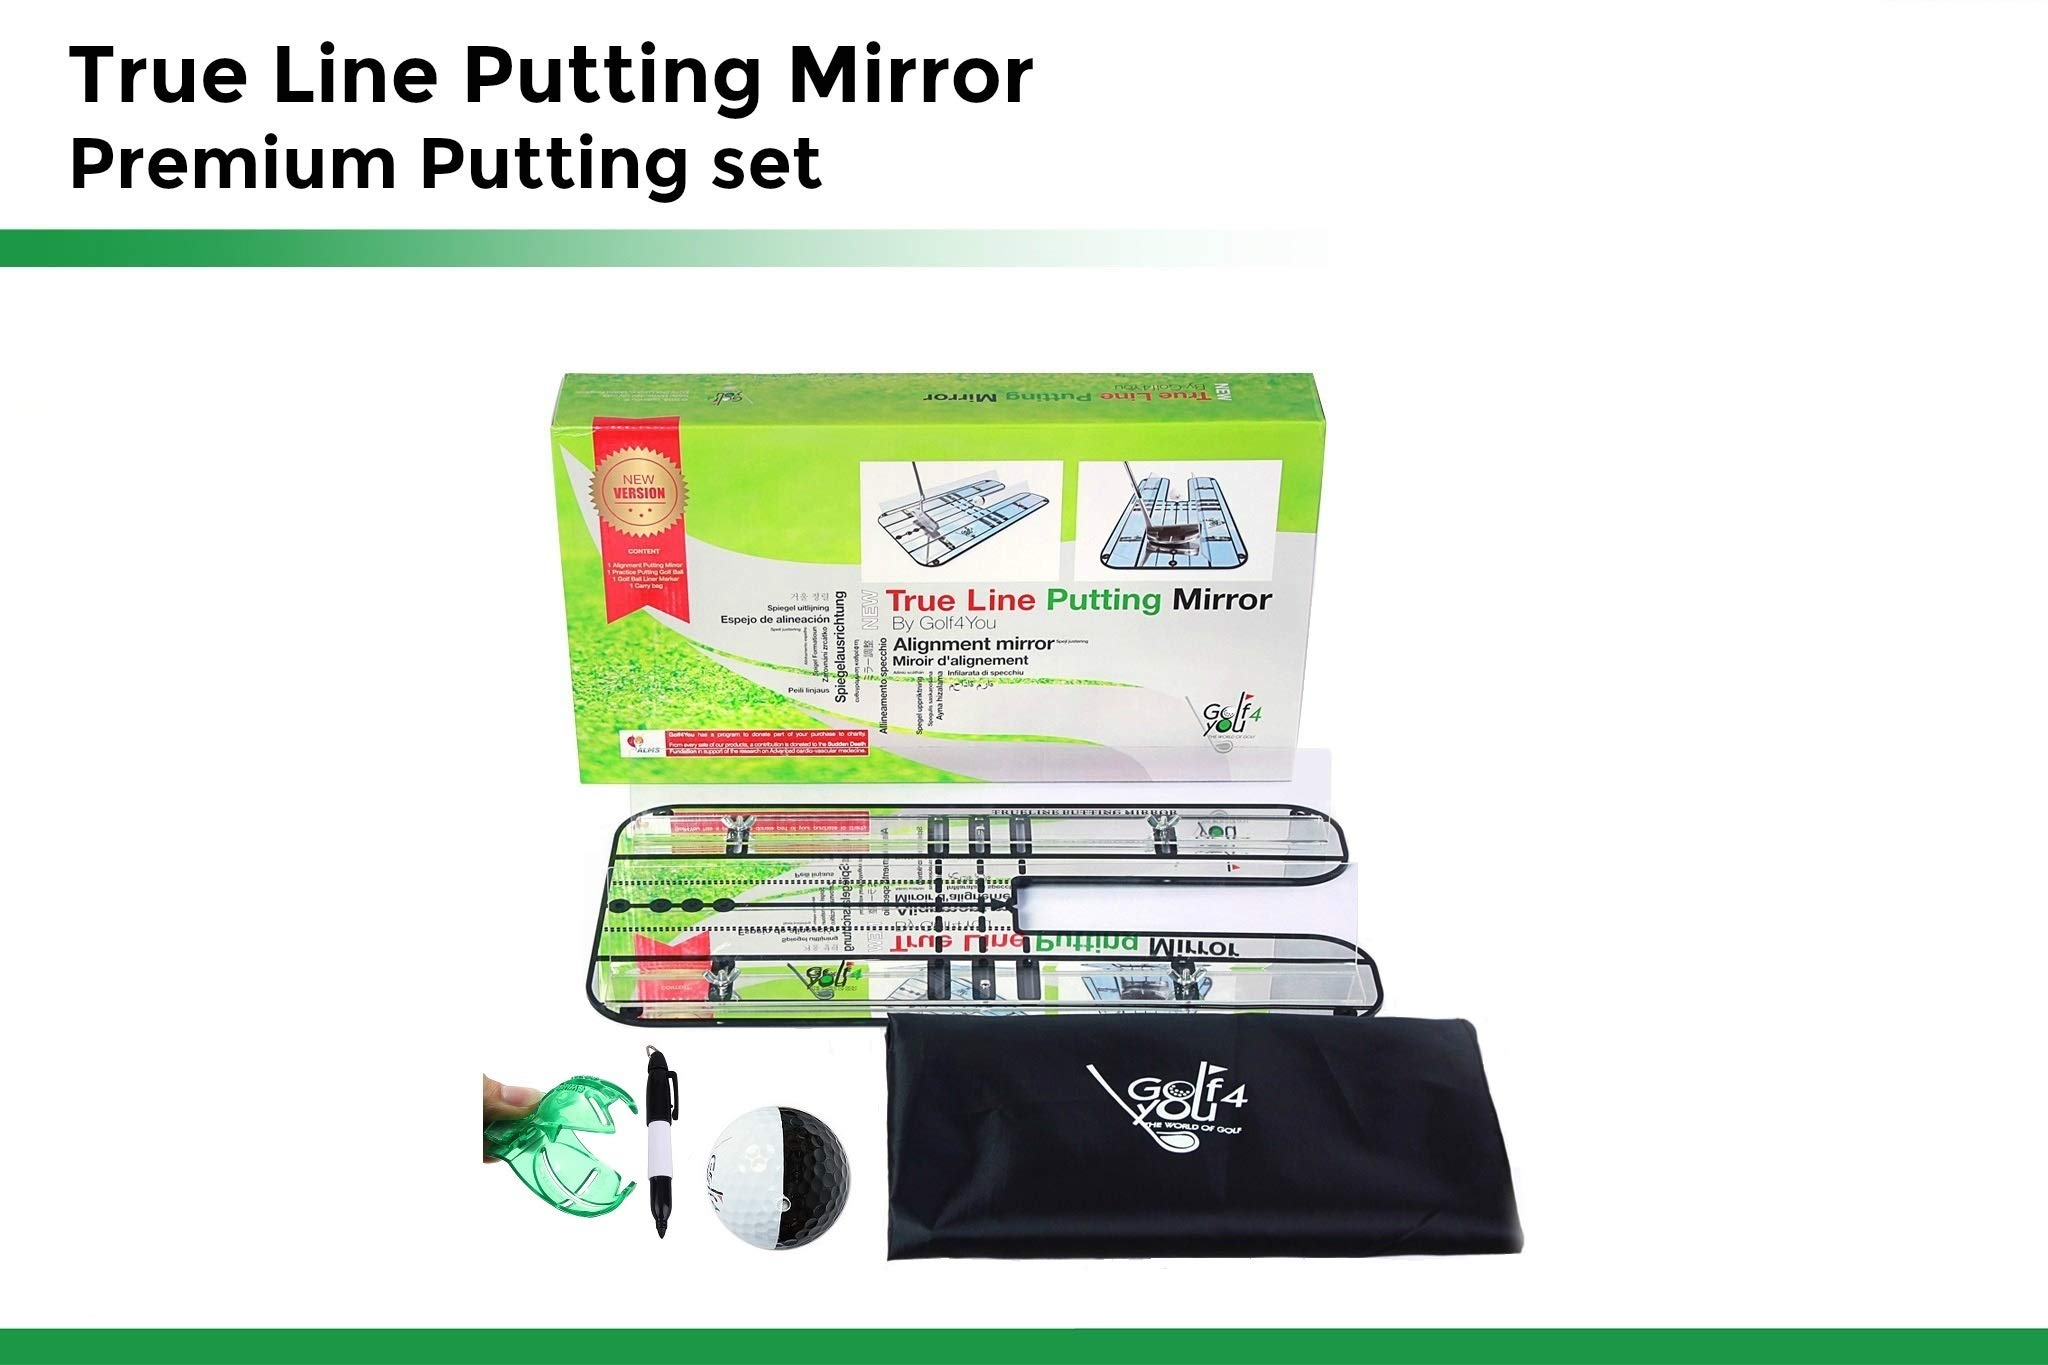 Golf Training Aid, Putting Set - XL Alignment Mirror Design with Our Exclusive Clear Adjustable Guide Rails ''True Line Putting Mirror'' - Leading Practice Aid for On-Line, Consistent Putting Stroke by GOLF4 YOU THE WORLD OF GOLF (Image #2)